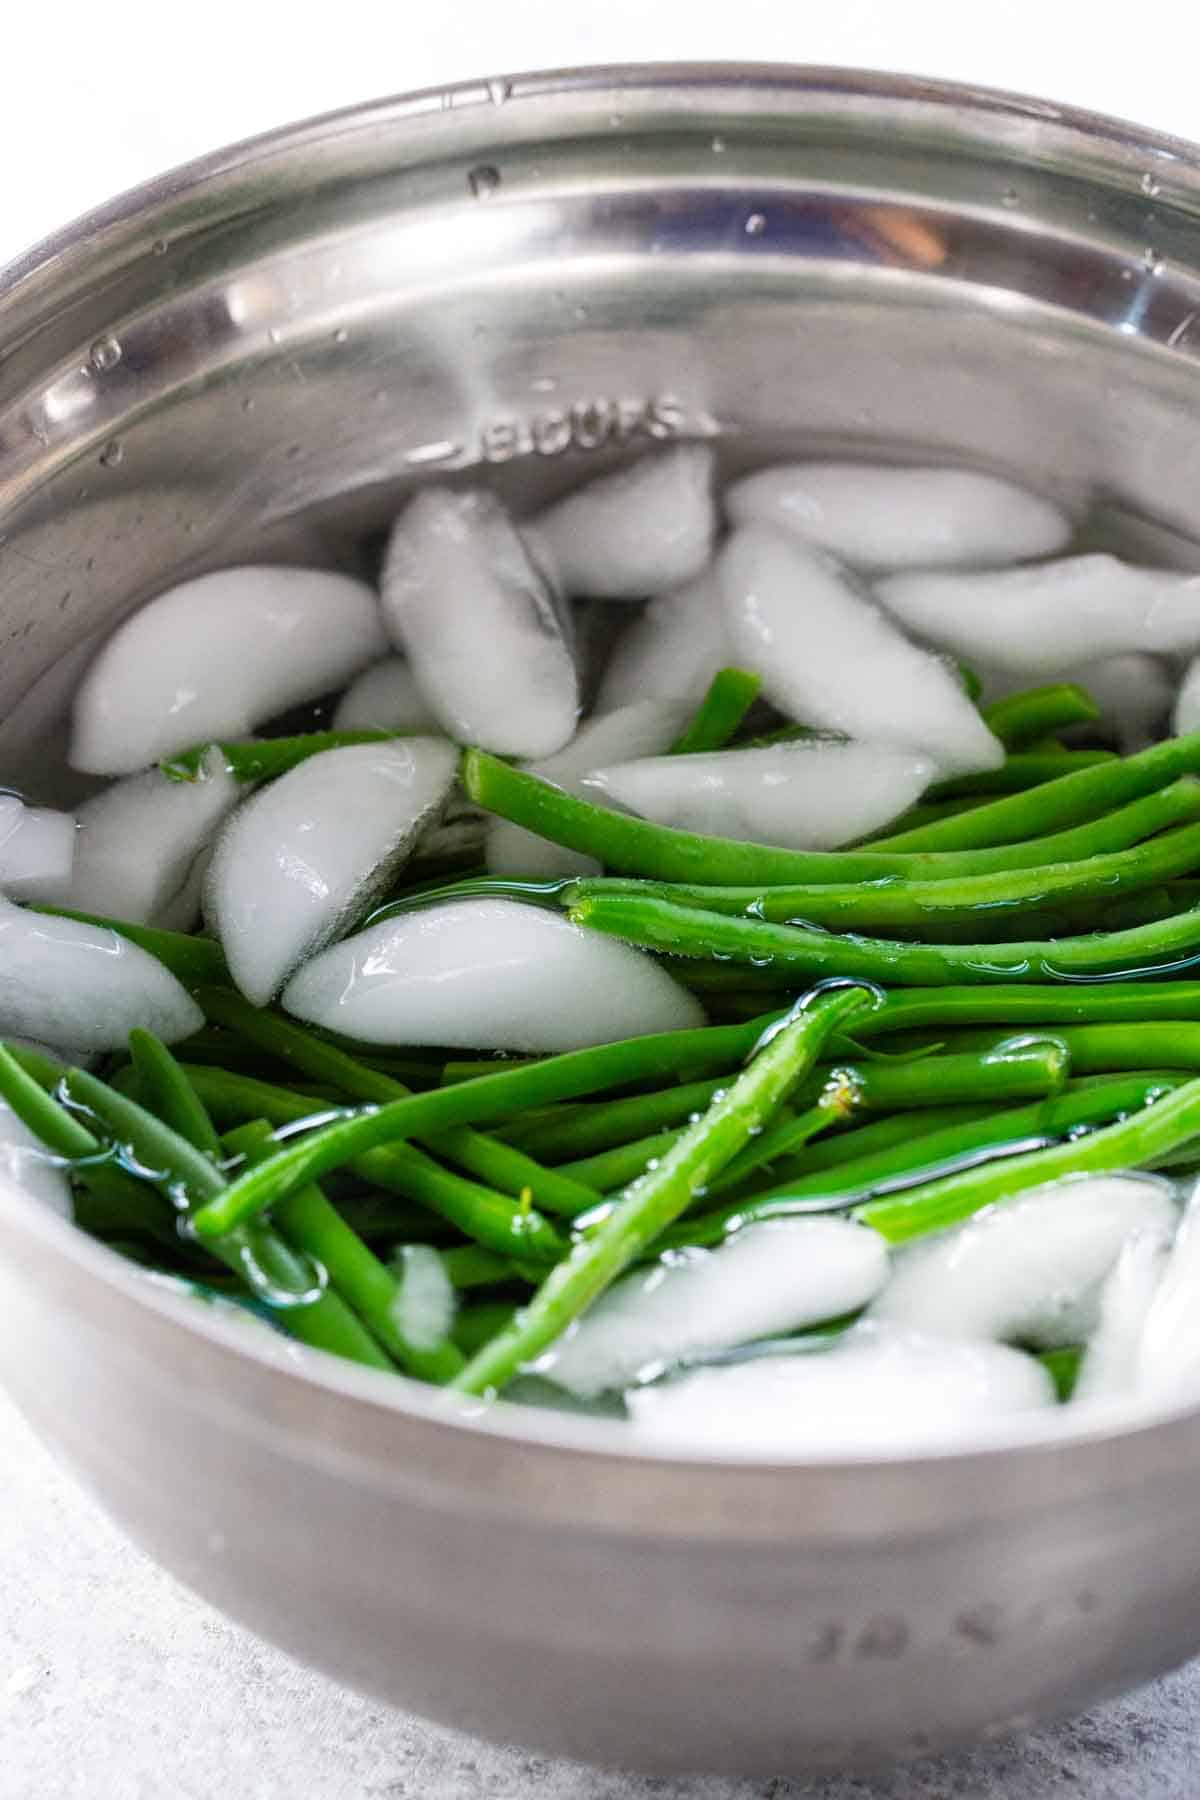 Large silver bowl of green beans and ice cubes